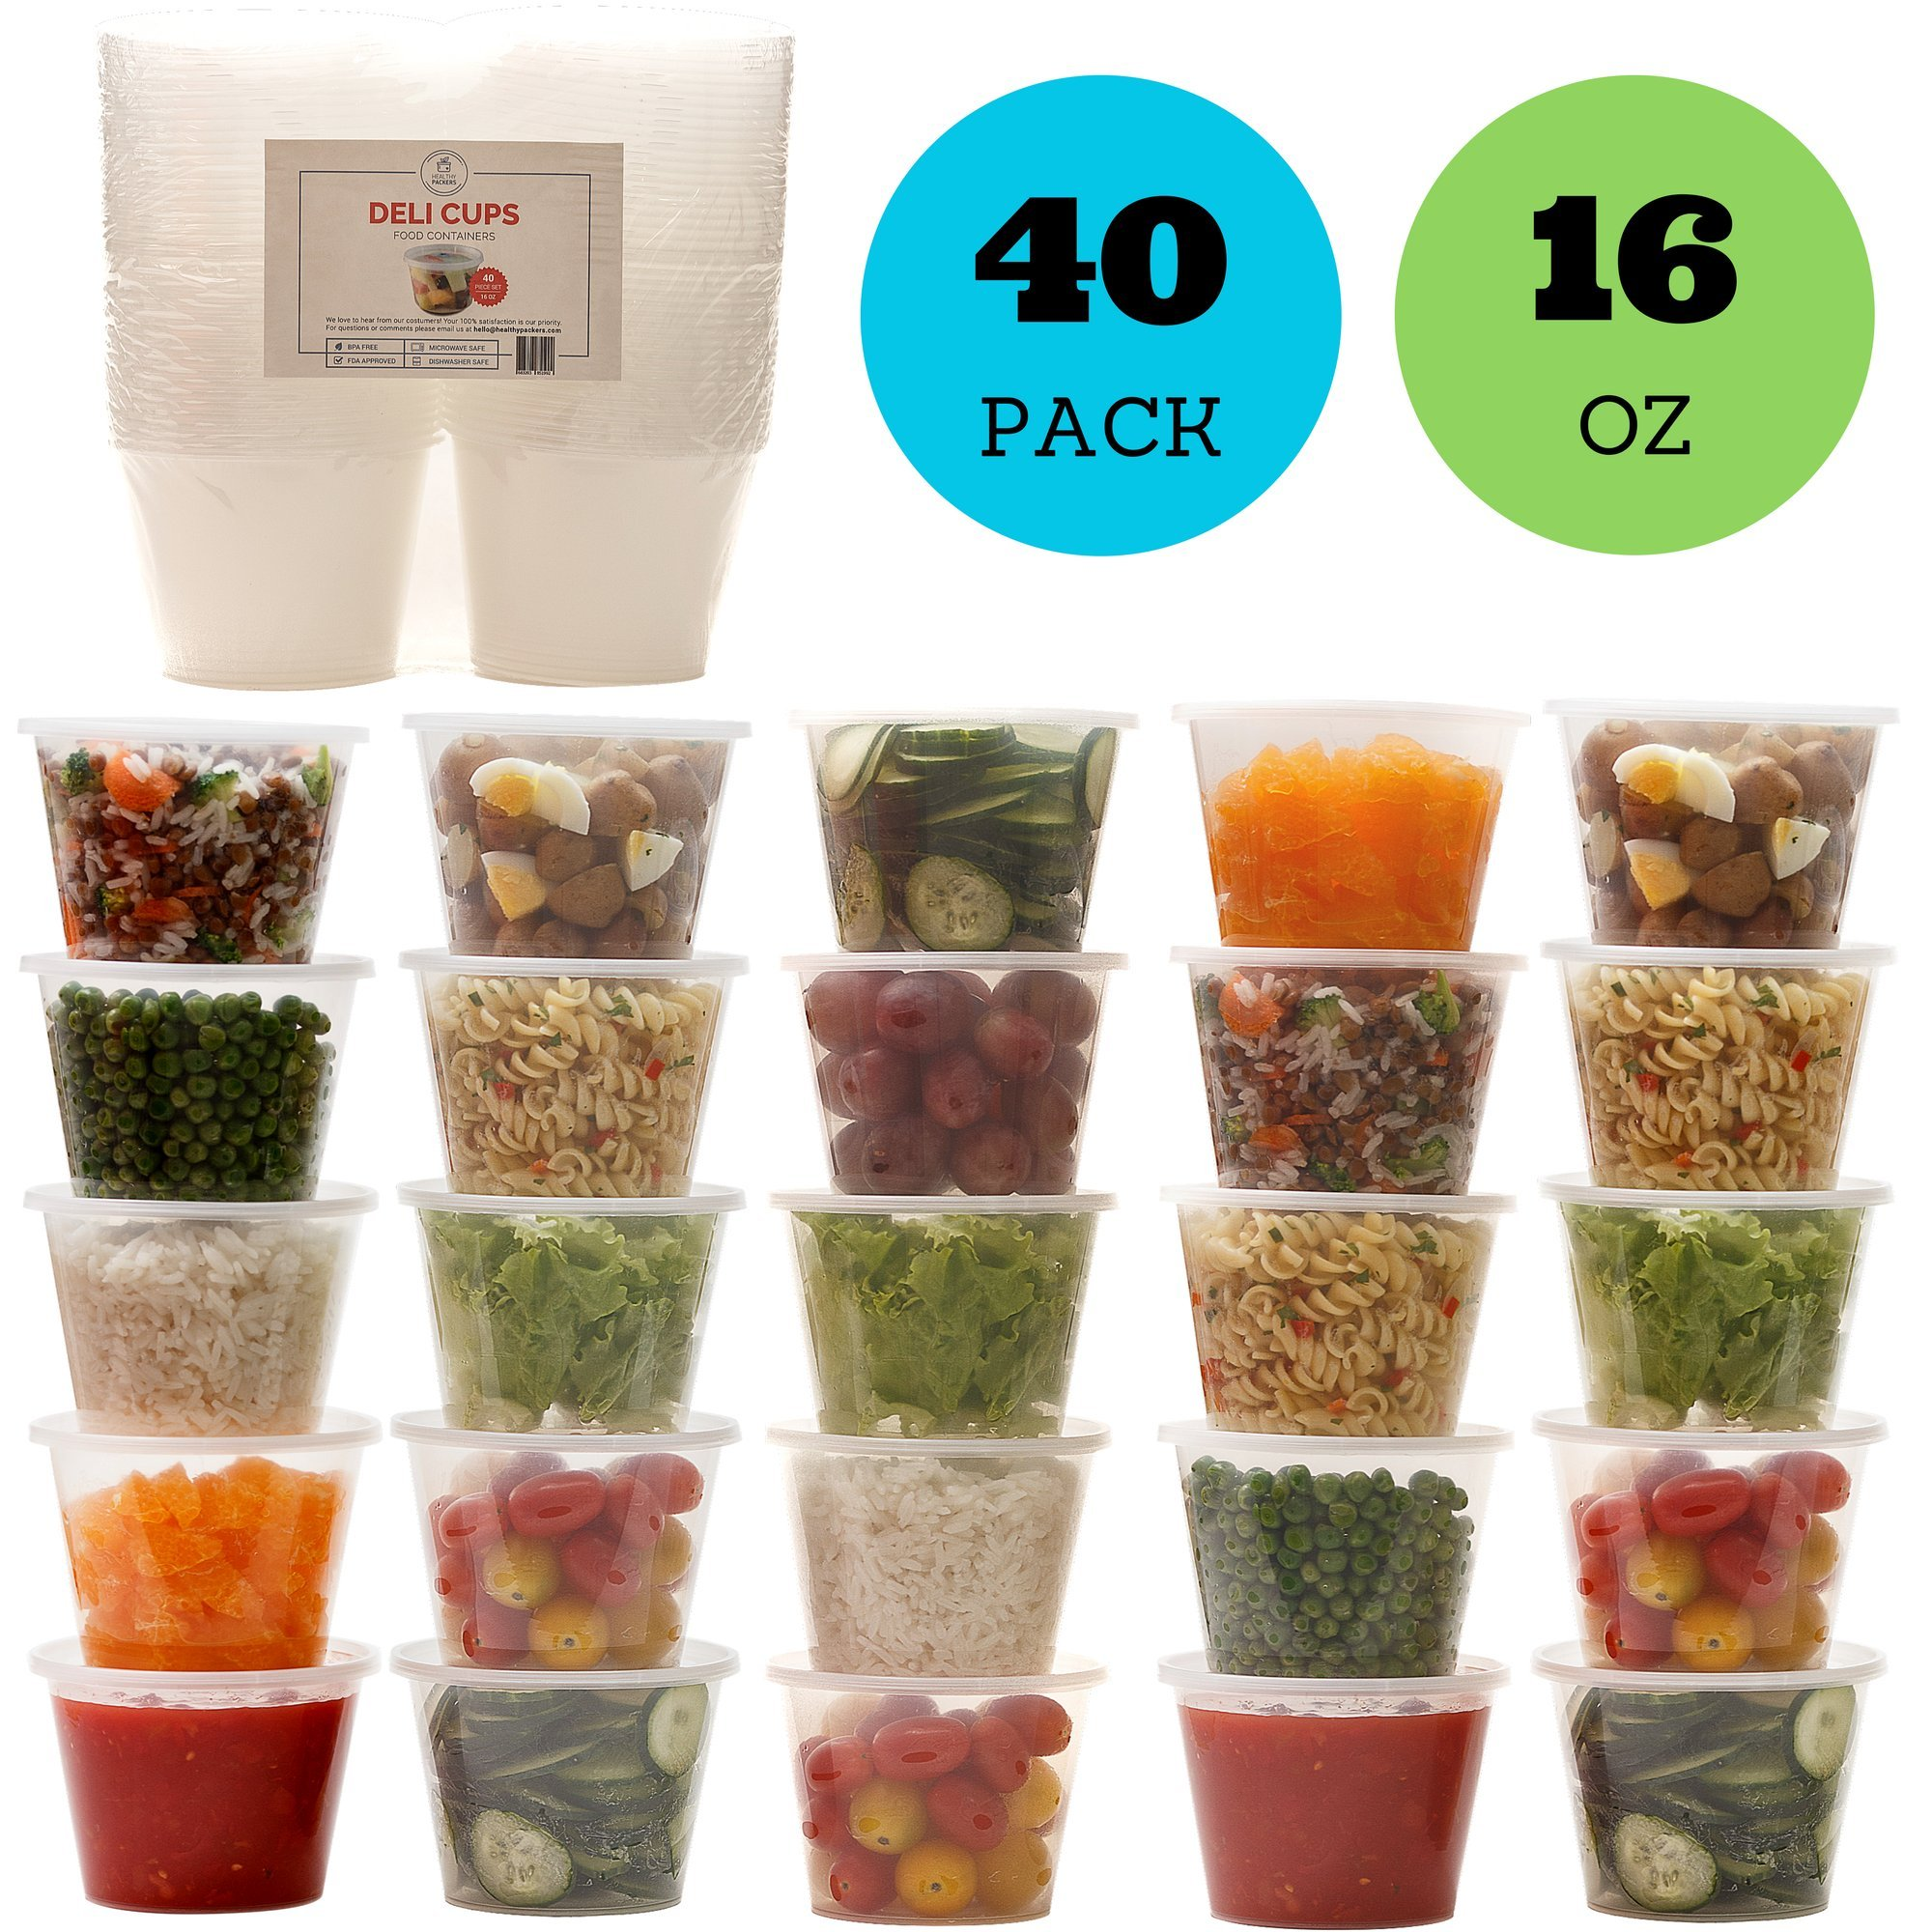 Deli Food Storage Containers with Lids - 16 oz. Leakproof Clear Plastic Deli Cups - BPA Free, Microwaveable, Freezer and Dishwasher Safe. (40 Pack)